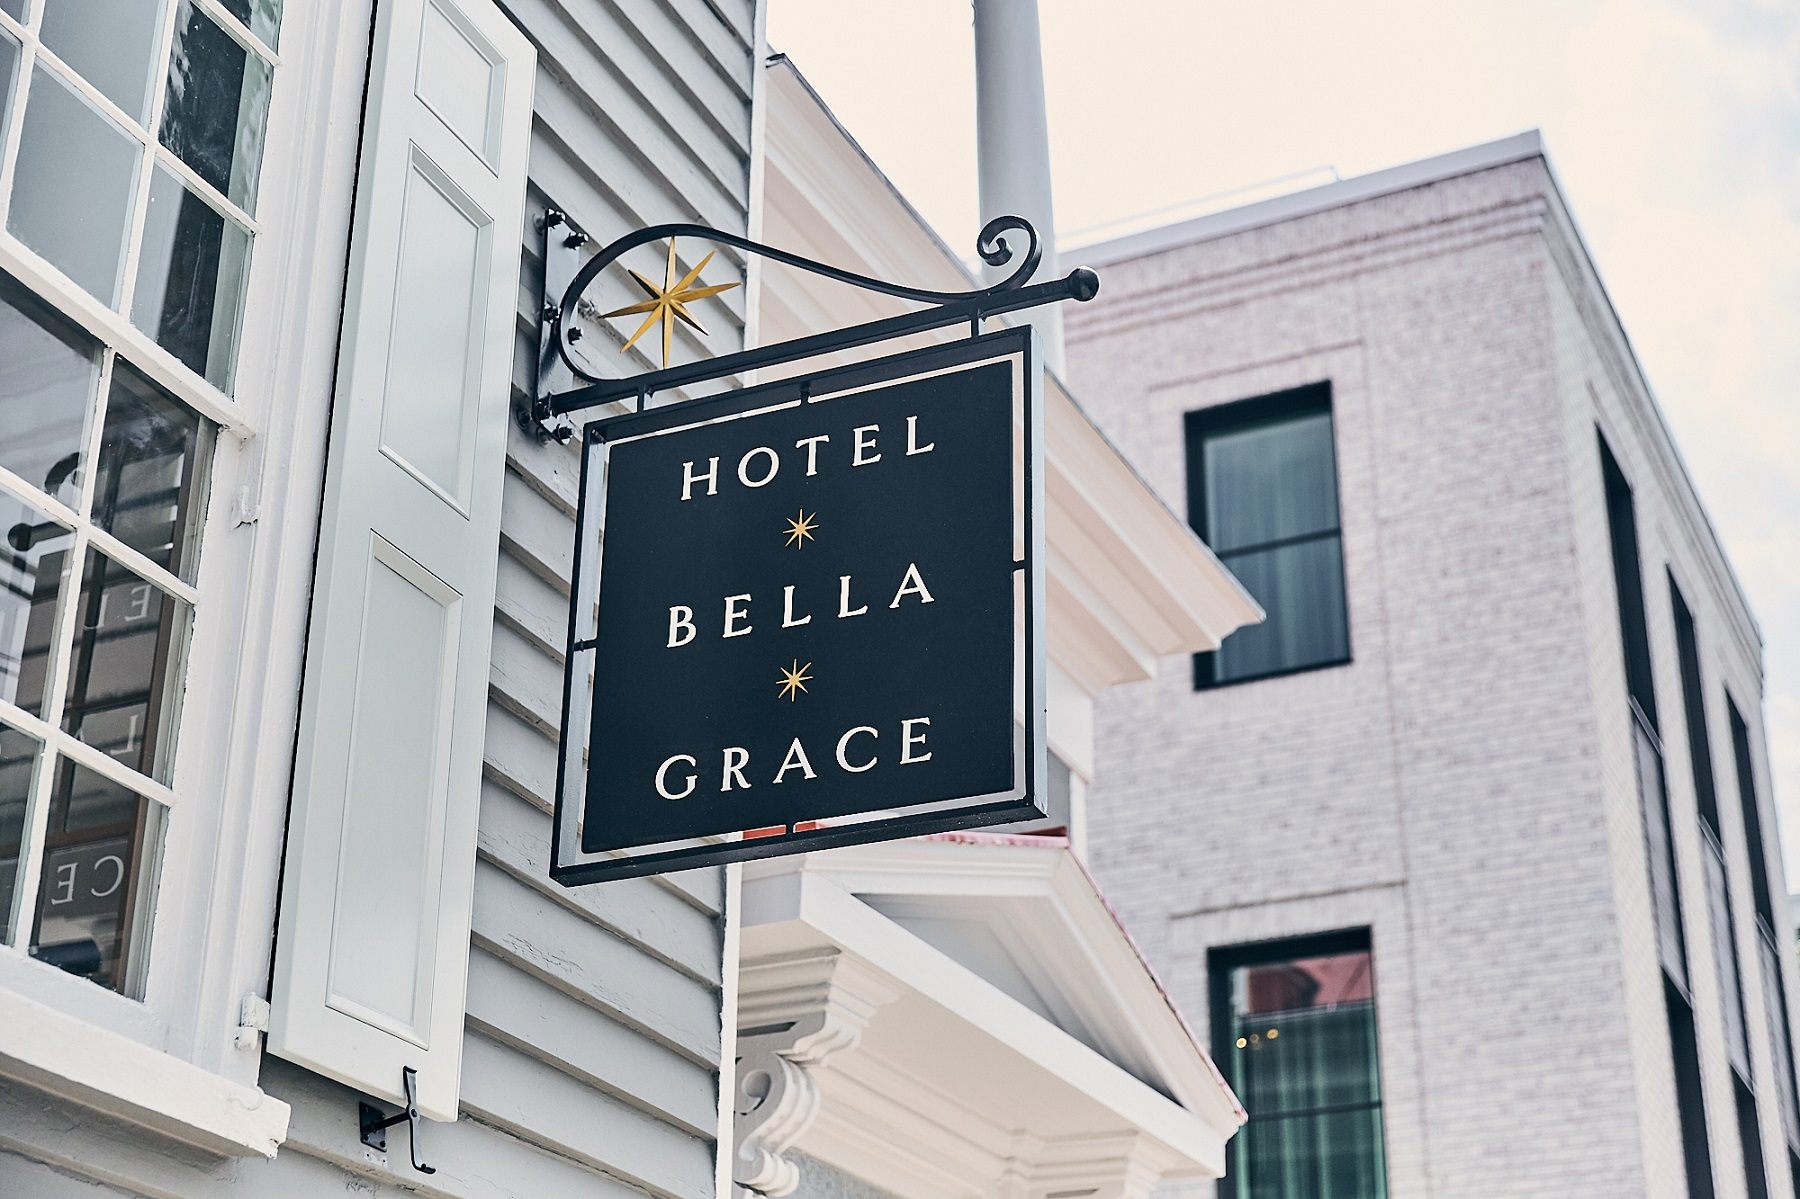 hotel bella grace sign